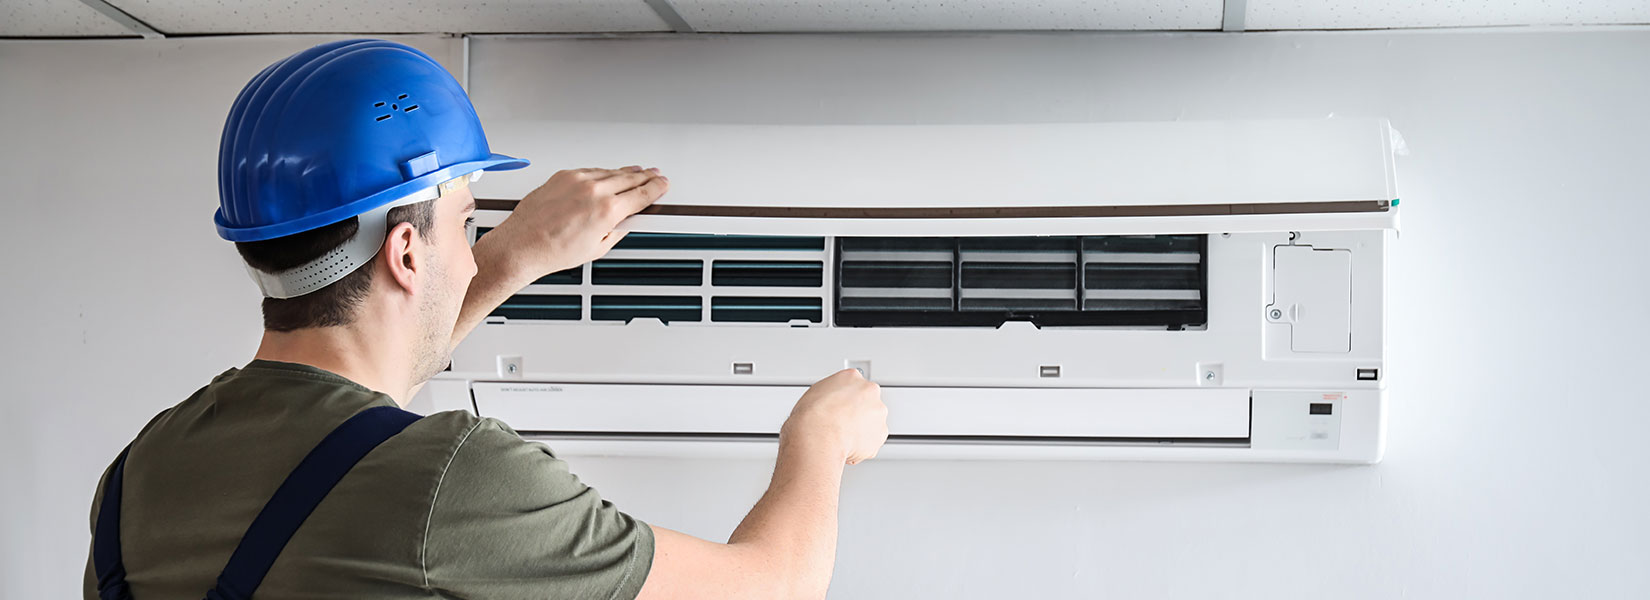 Minimizing Issues With Your Air Conditioner HVAC Contractor Greenville